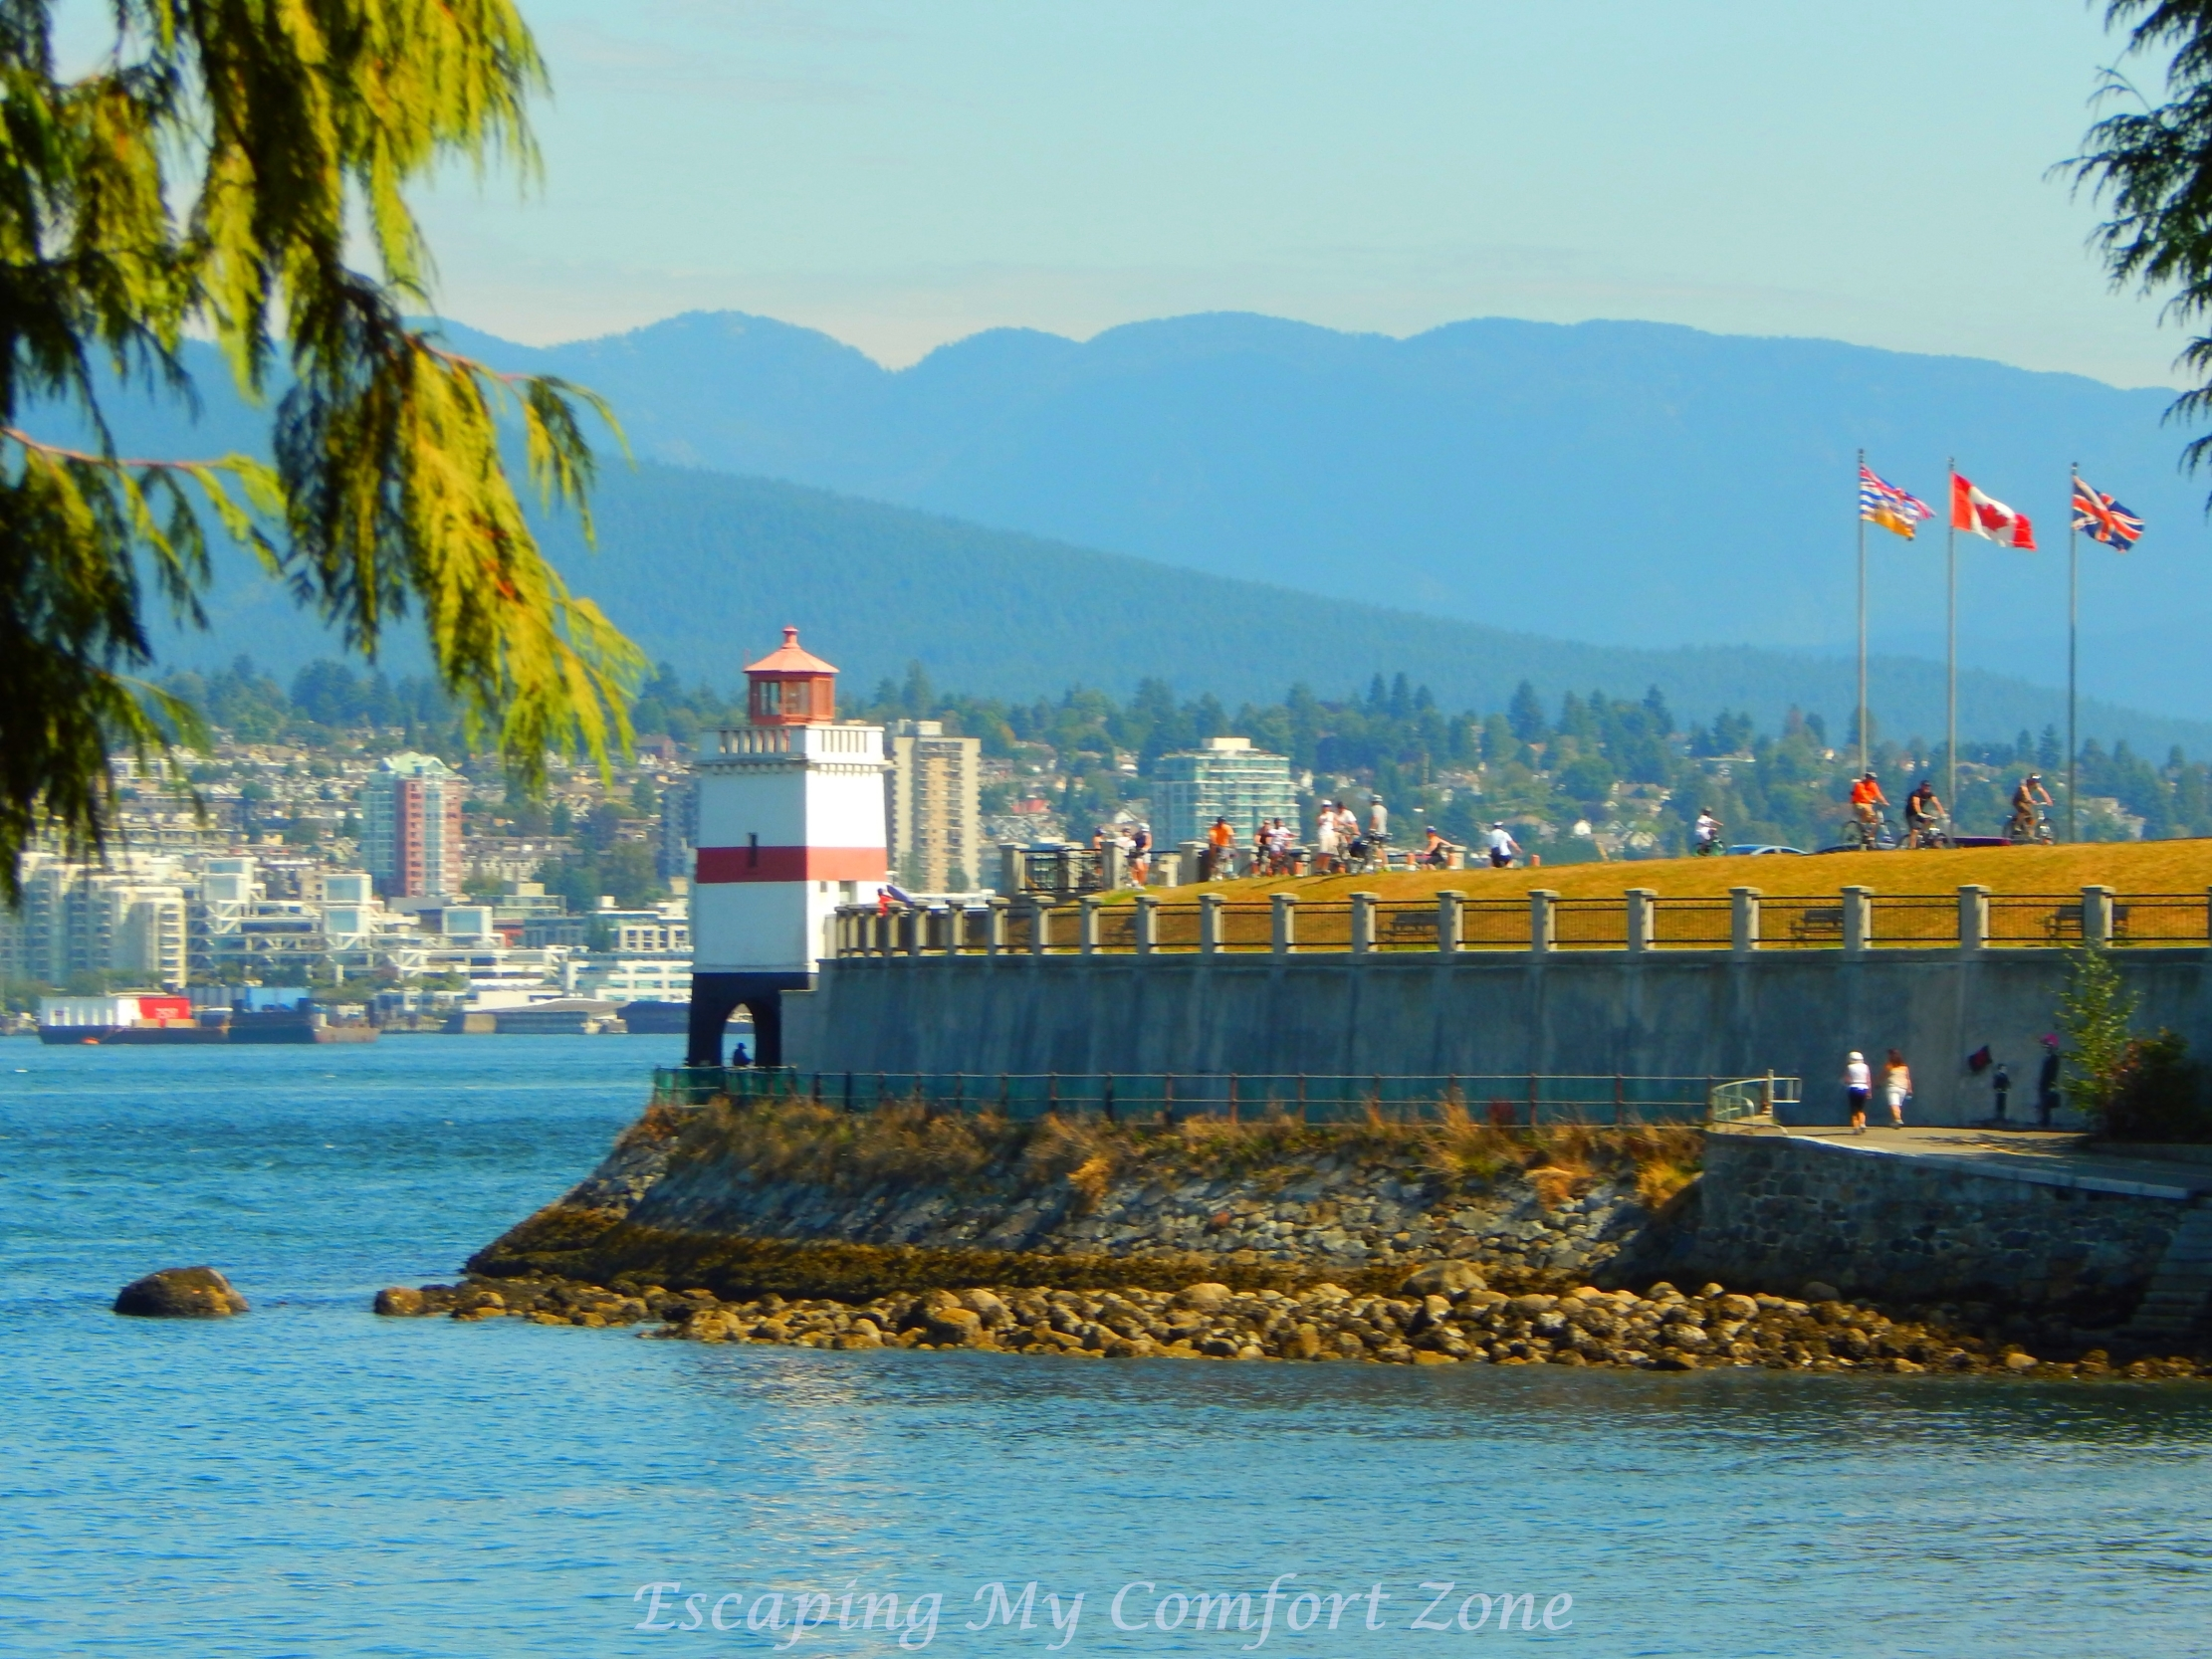 Brockton Point Stanley Park